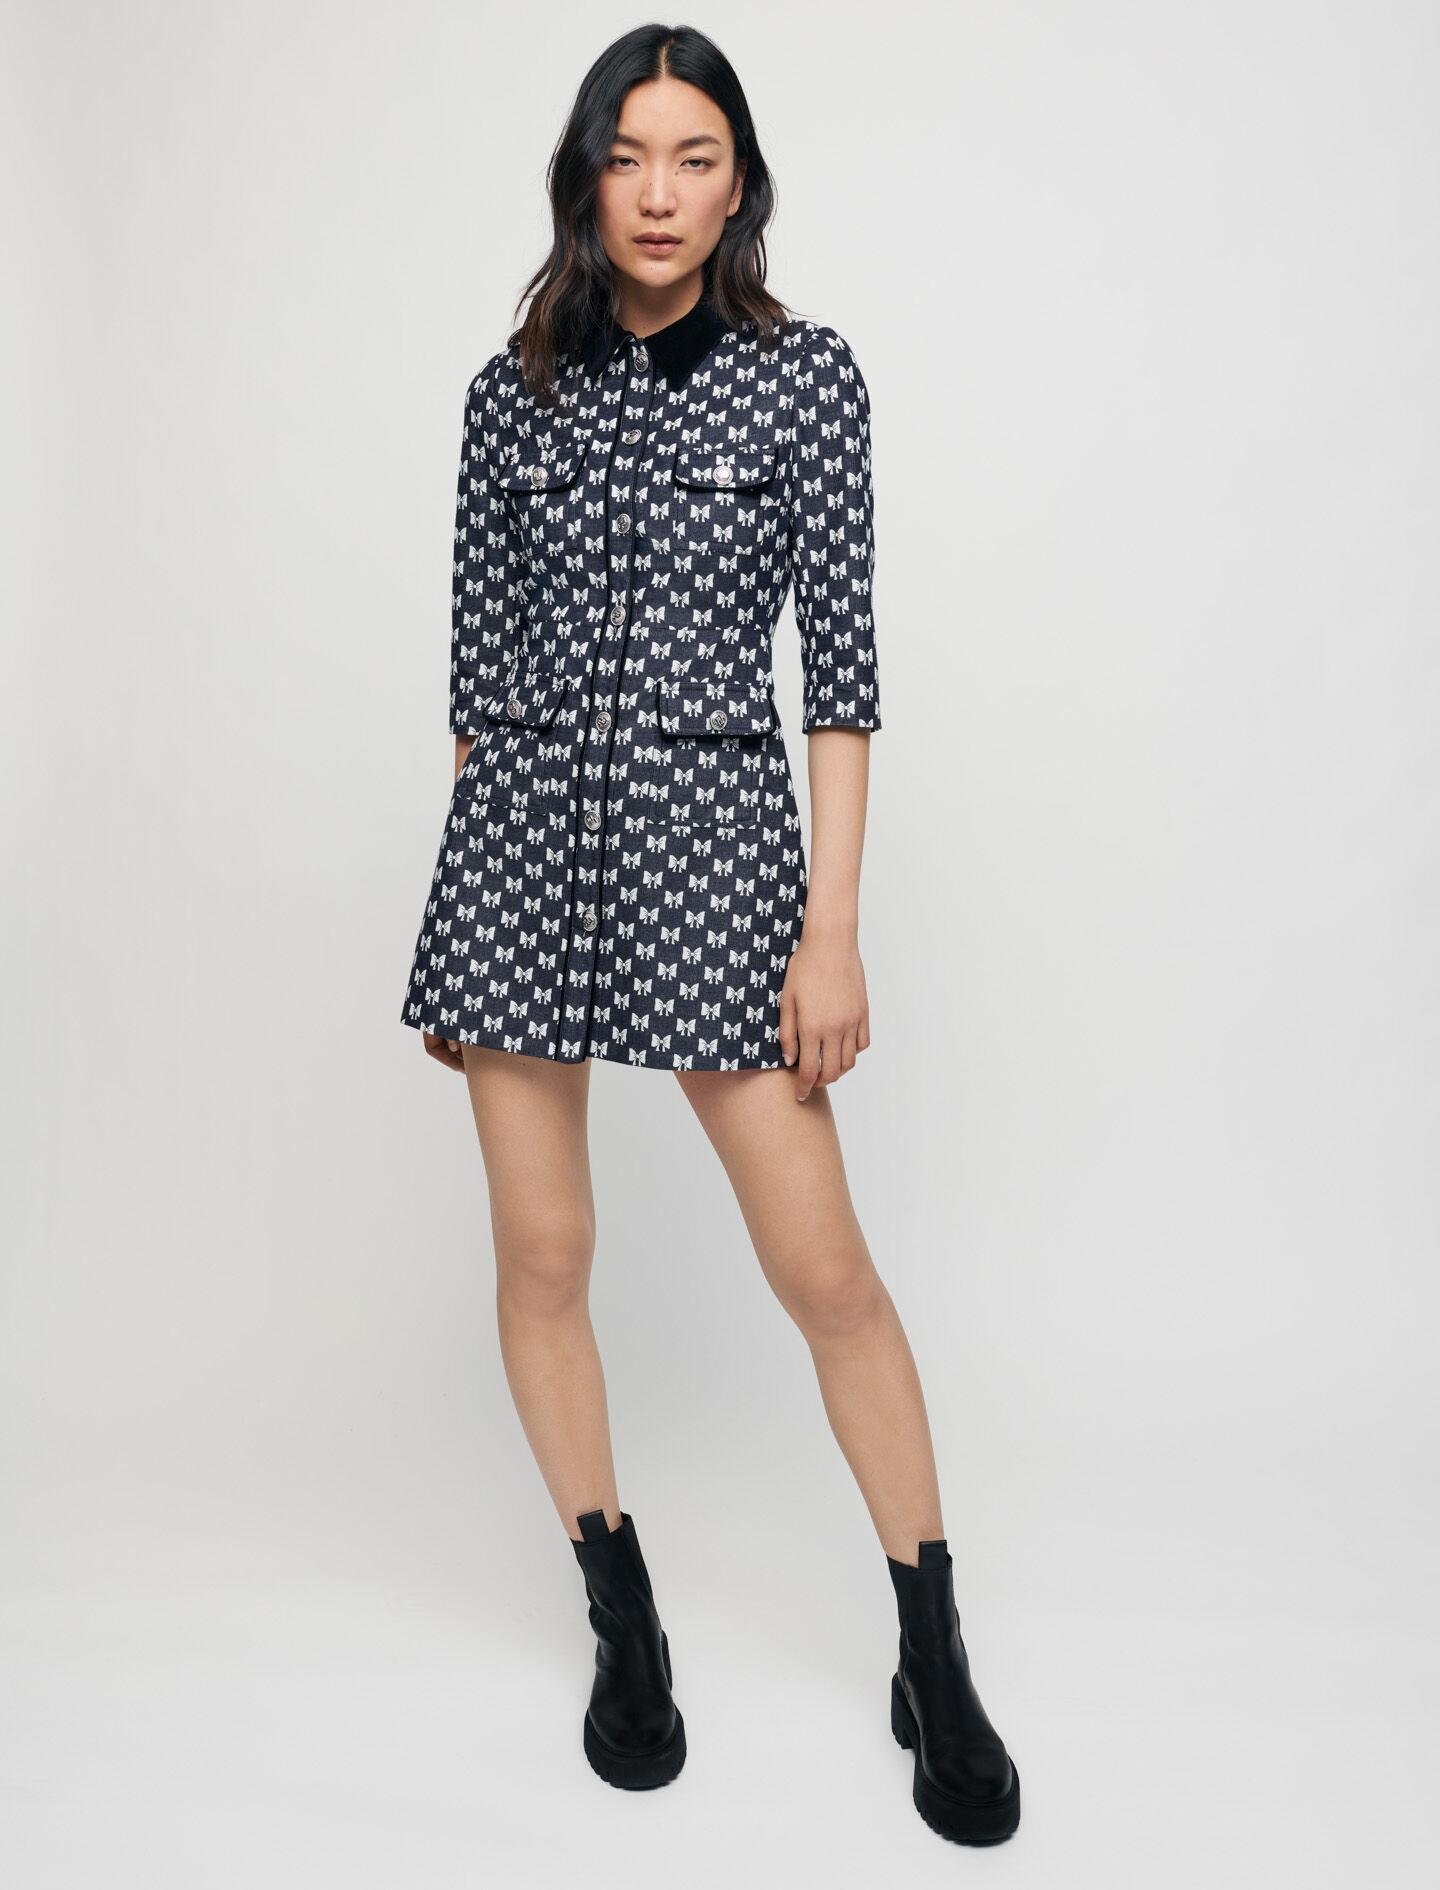 JACQUARD DRESS WITH BOW PATTERN